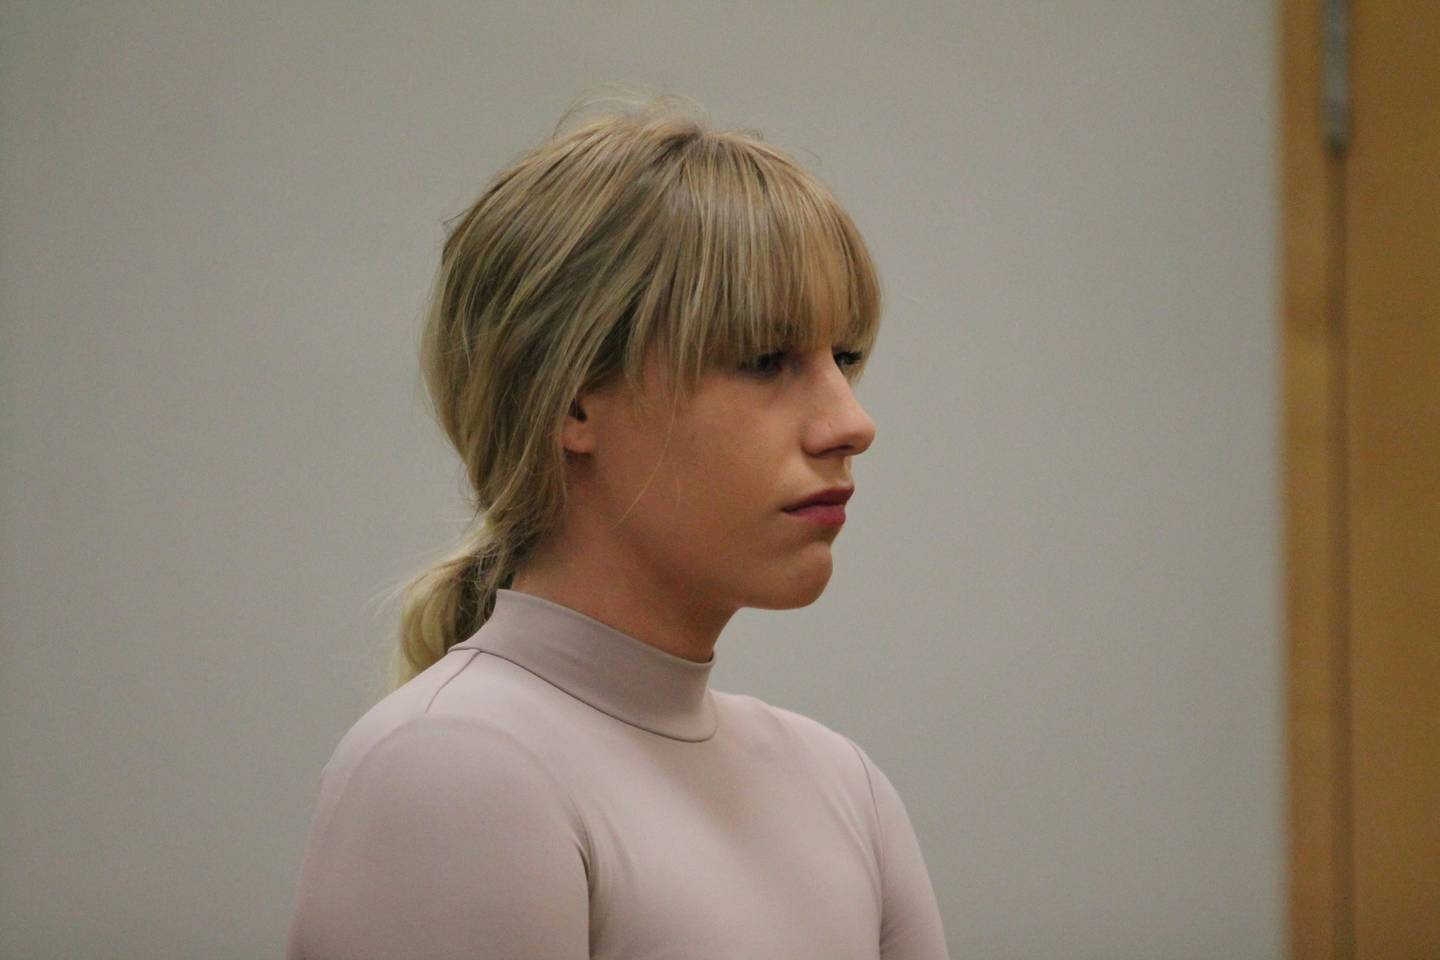 Rouxle Le Roux was sentenced to home detention in the Auckland District Court. Photo: NZ Herald